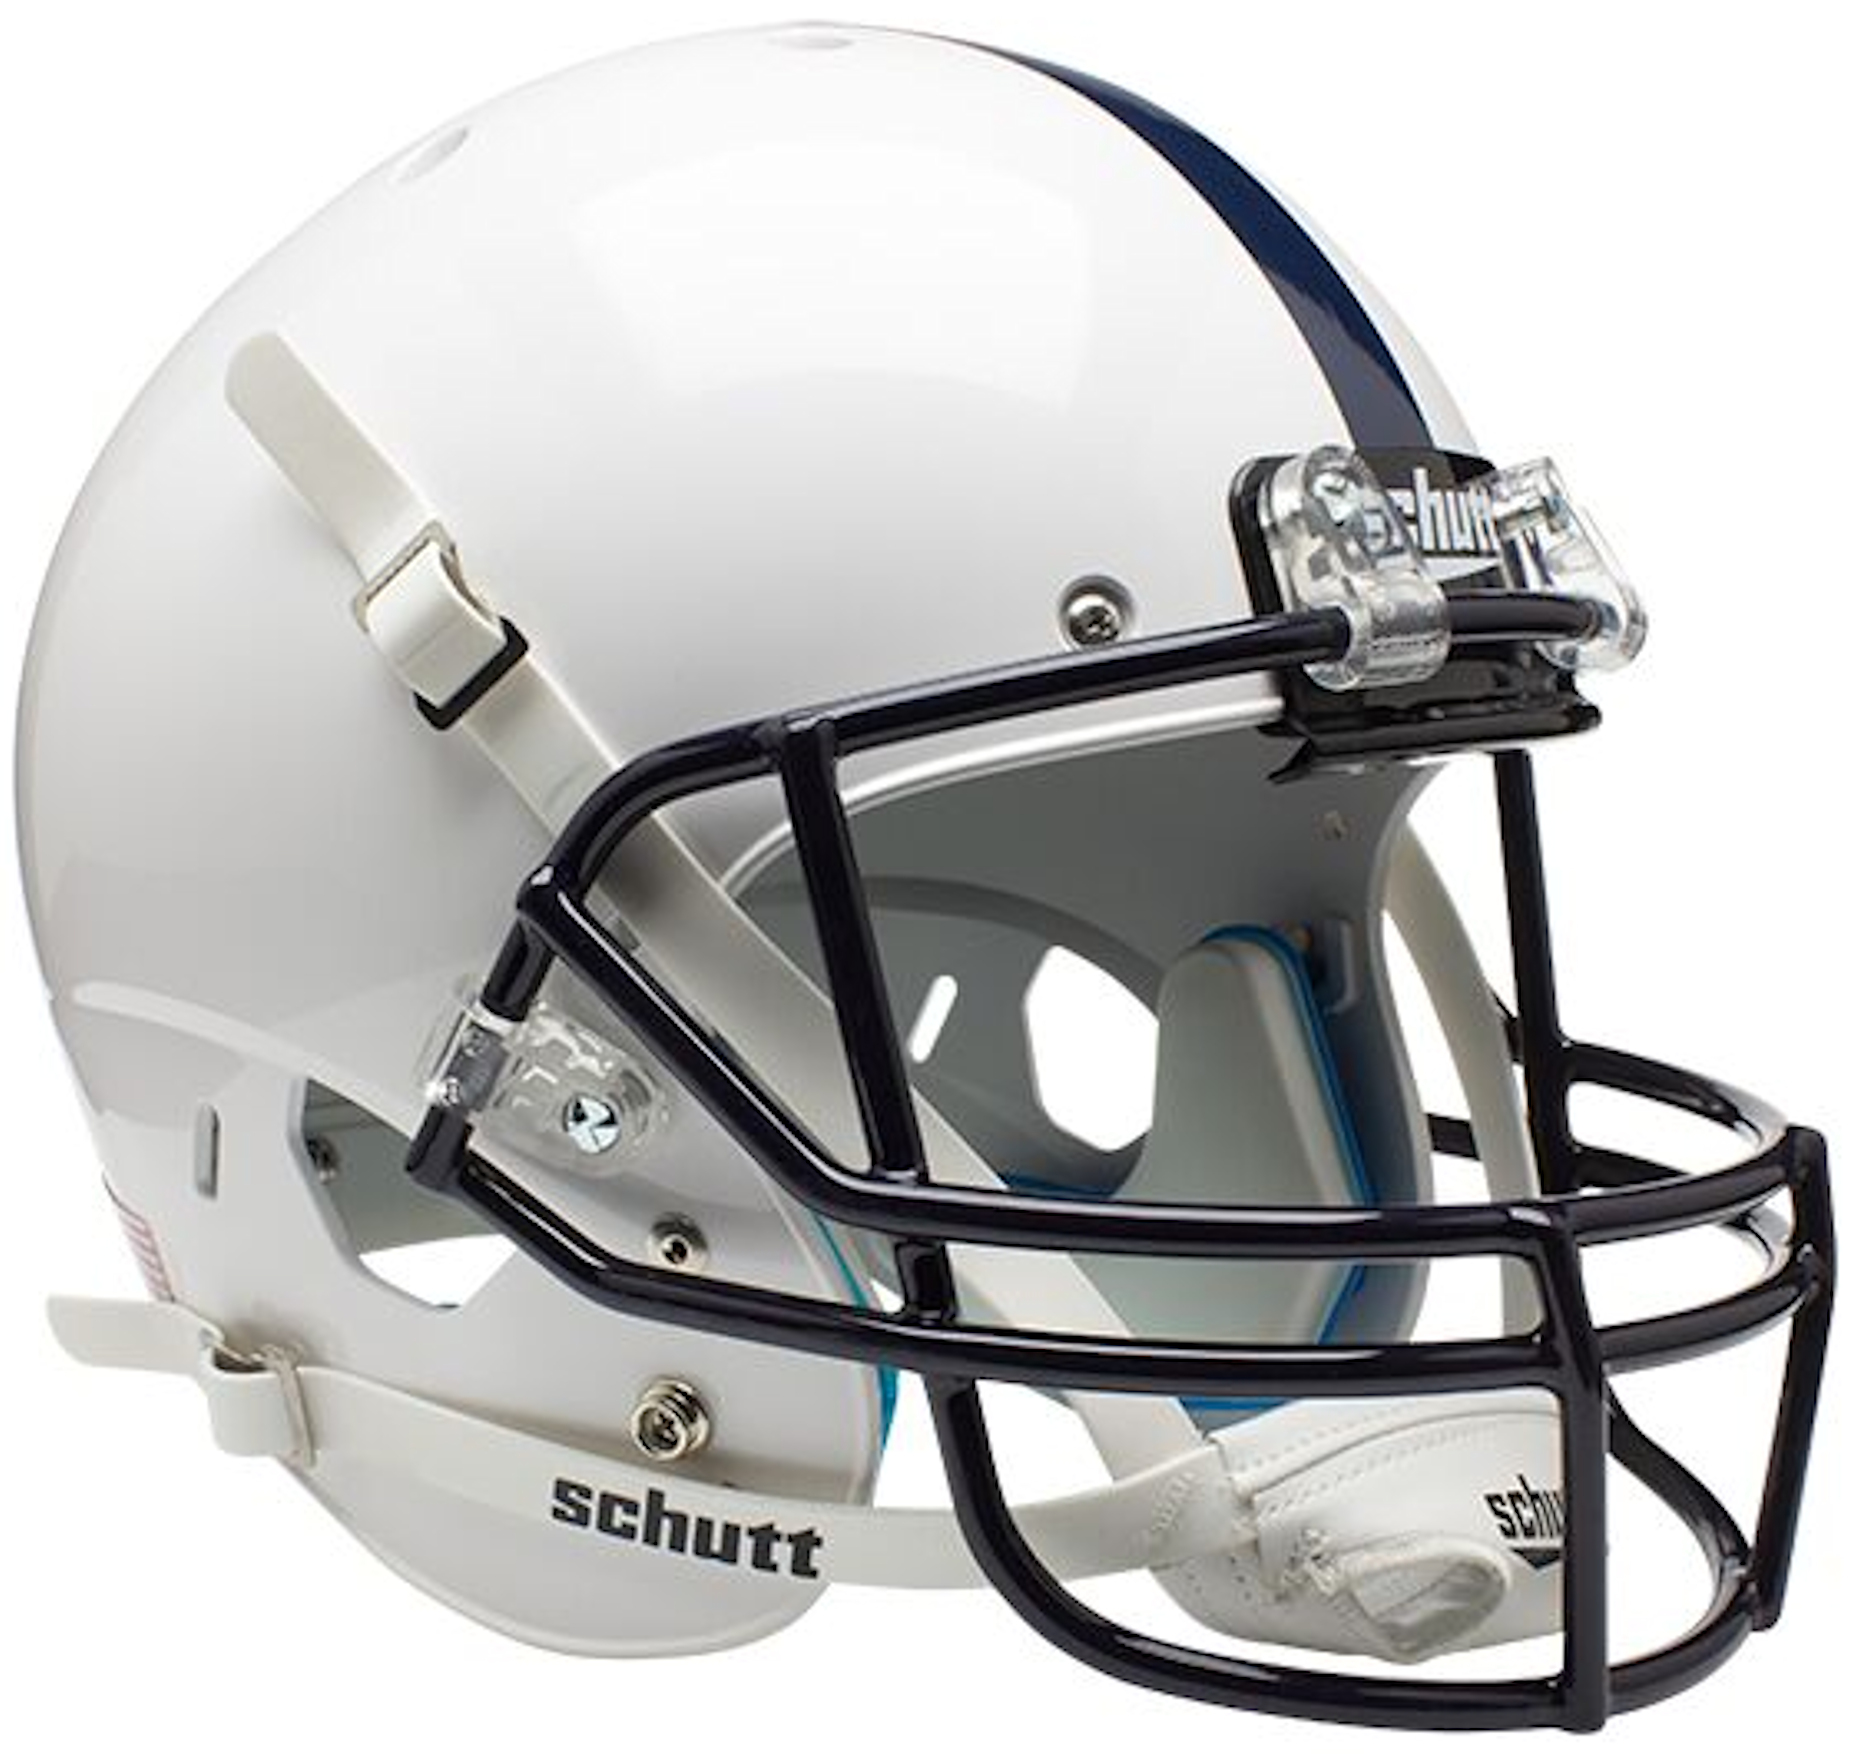 Penn State Nittany Lions Full XP Replica Football Helmet Schutt